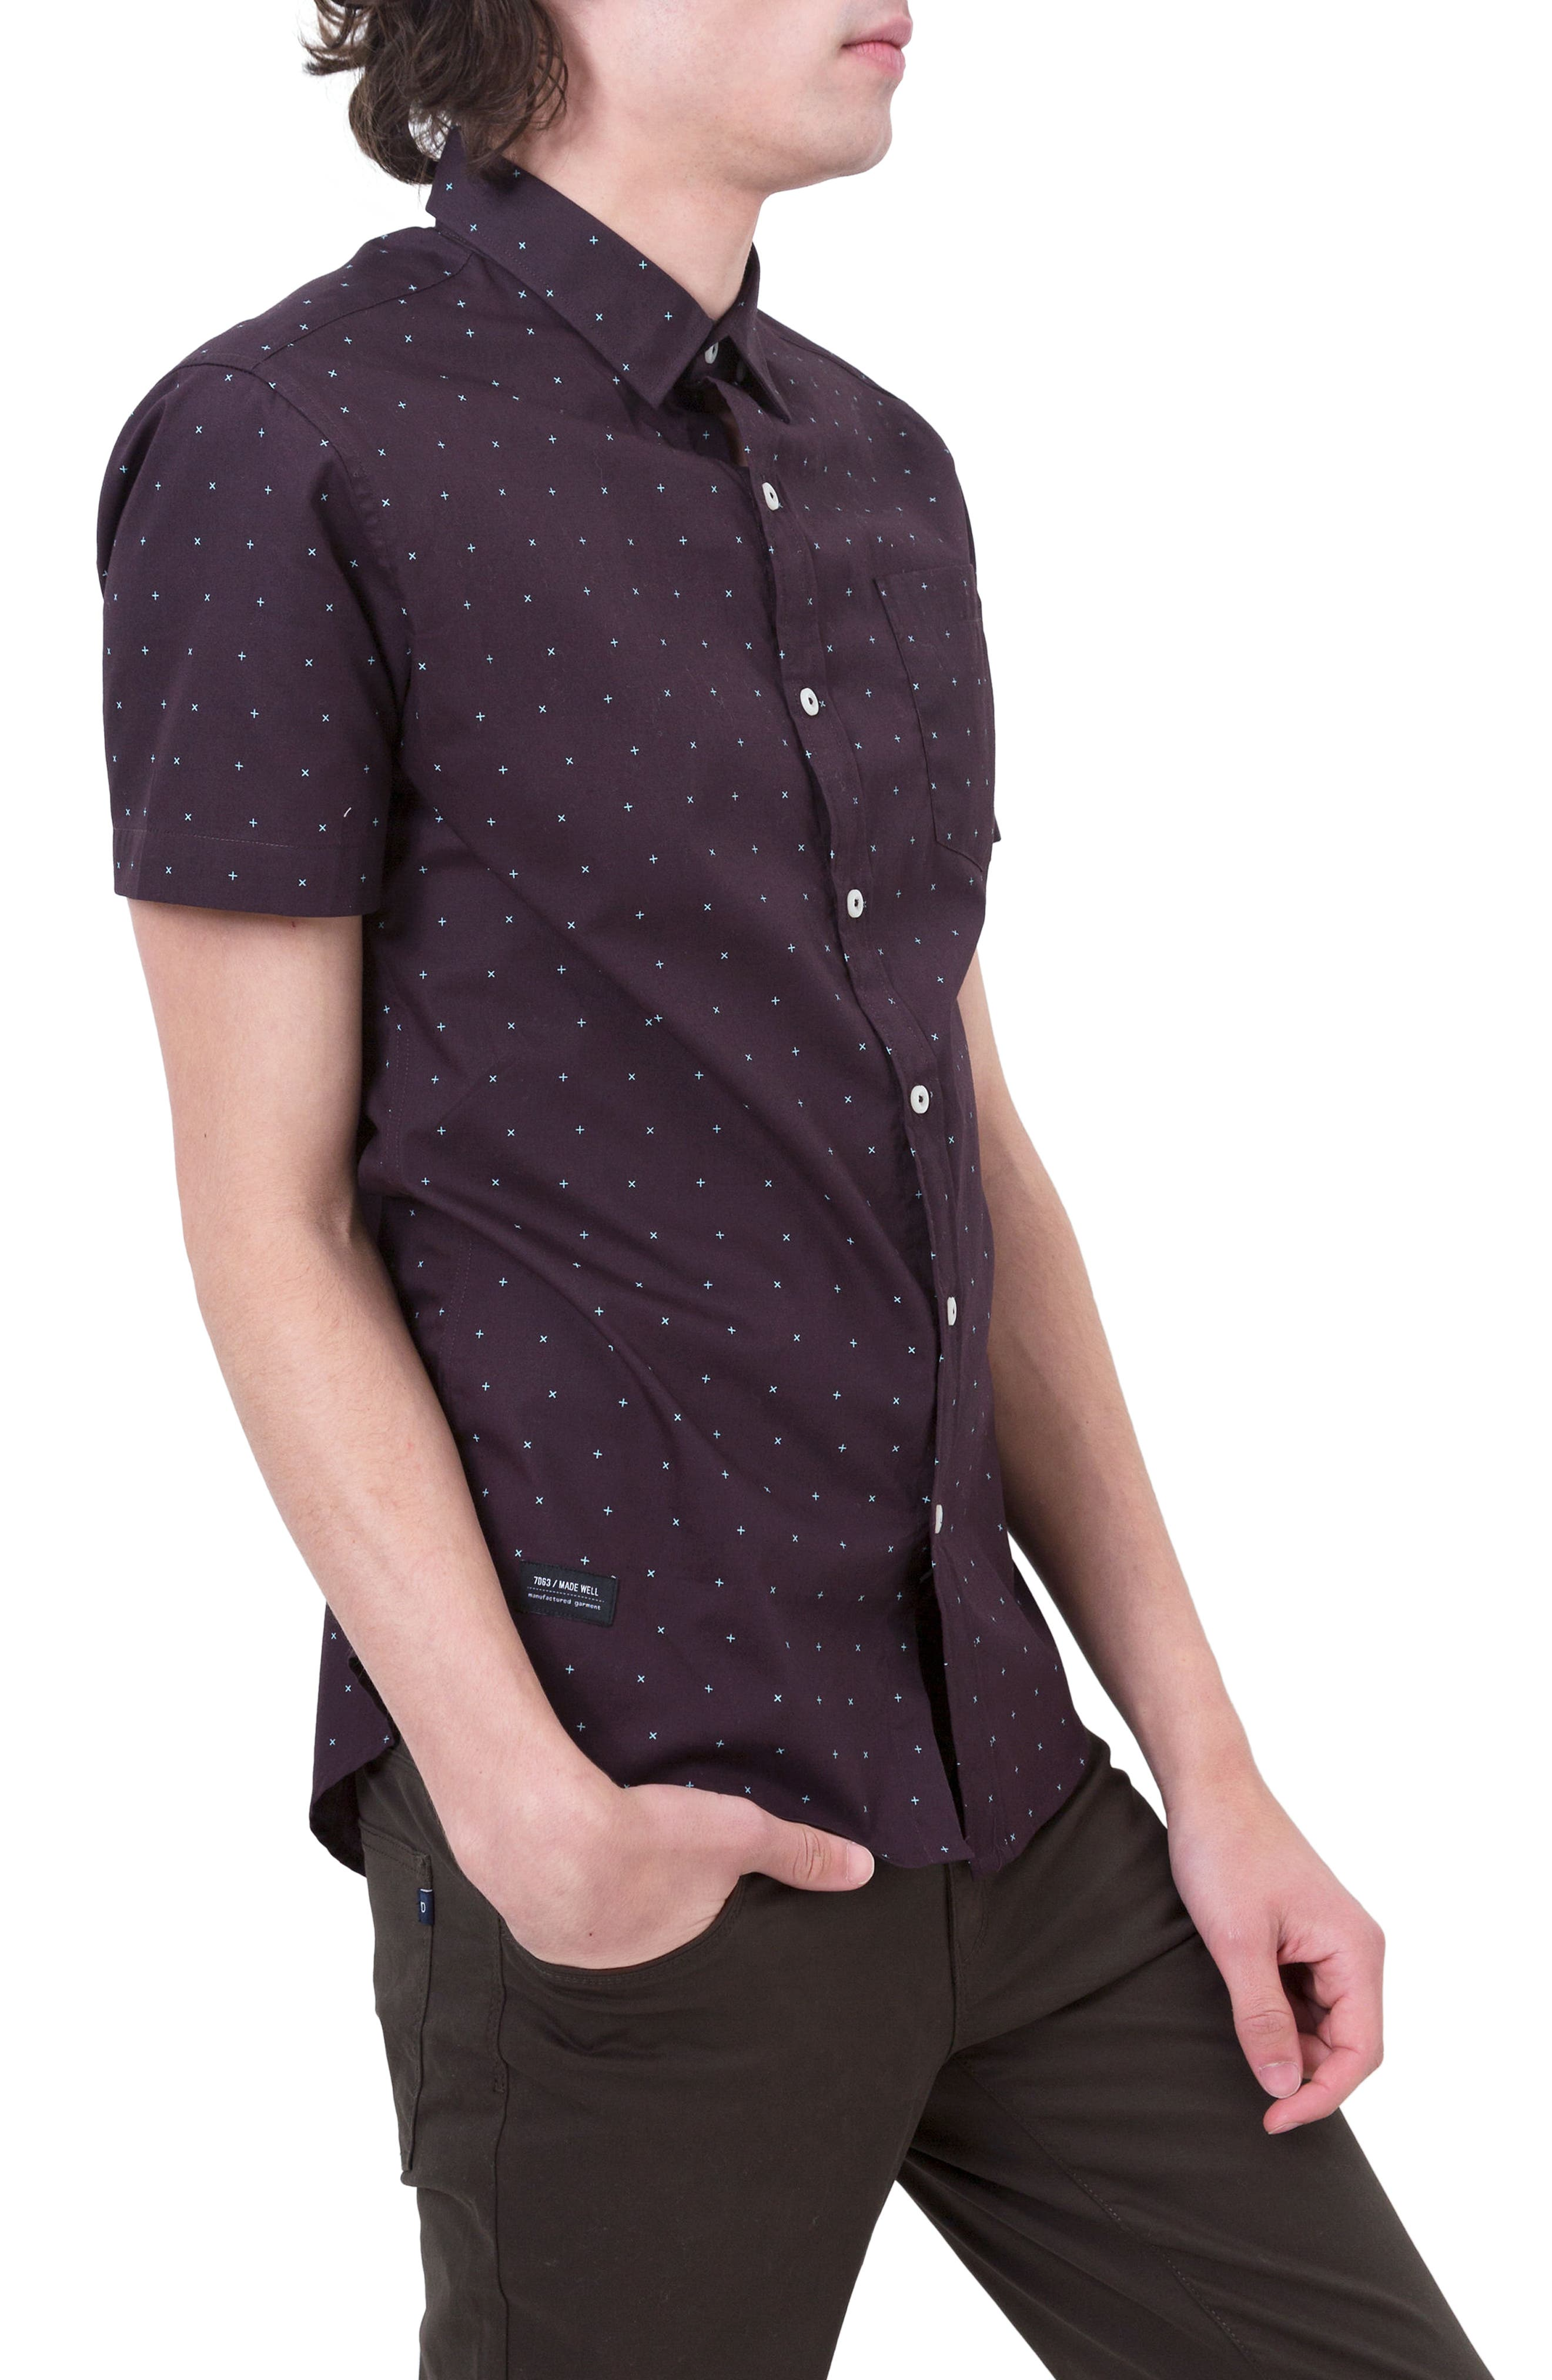 Hit Parade Woven Shirt,                             Alternate thumbnail 3, color,                             930